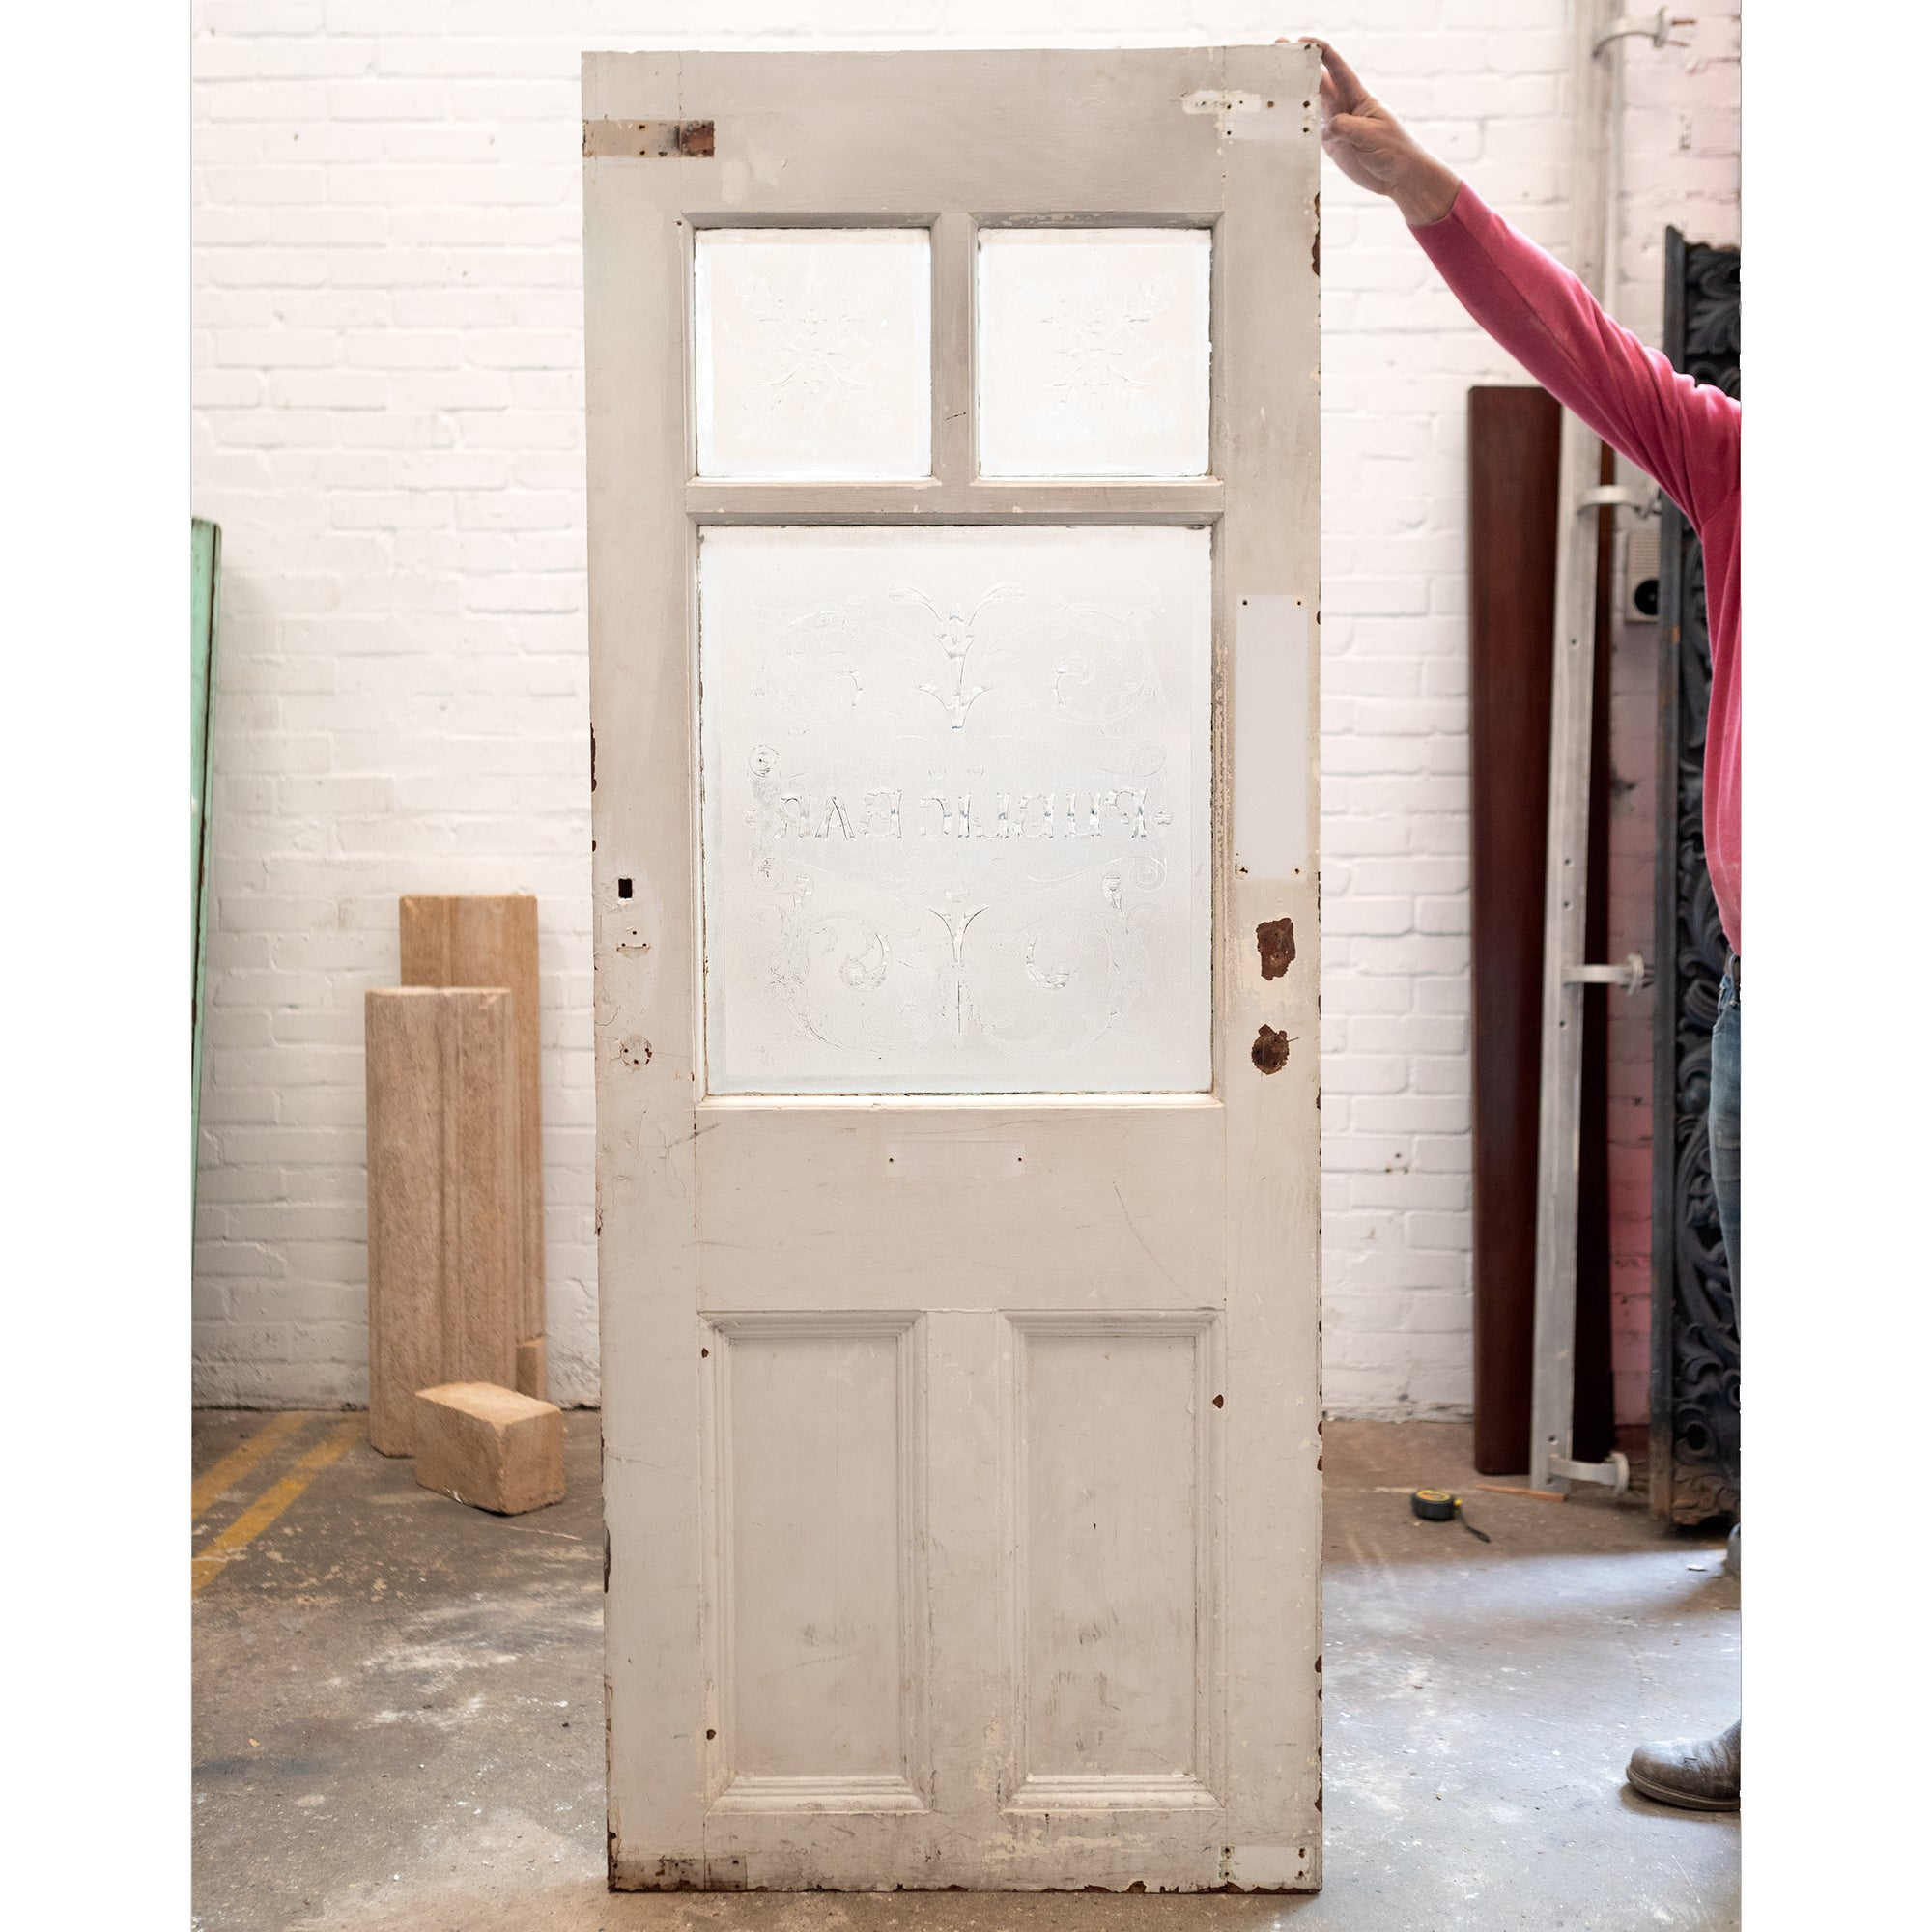 Antique Reclaimed Etched Glass Pub Door 200cm x 78.5cm